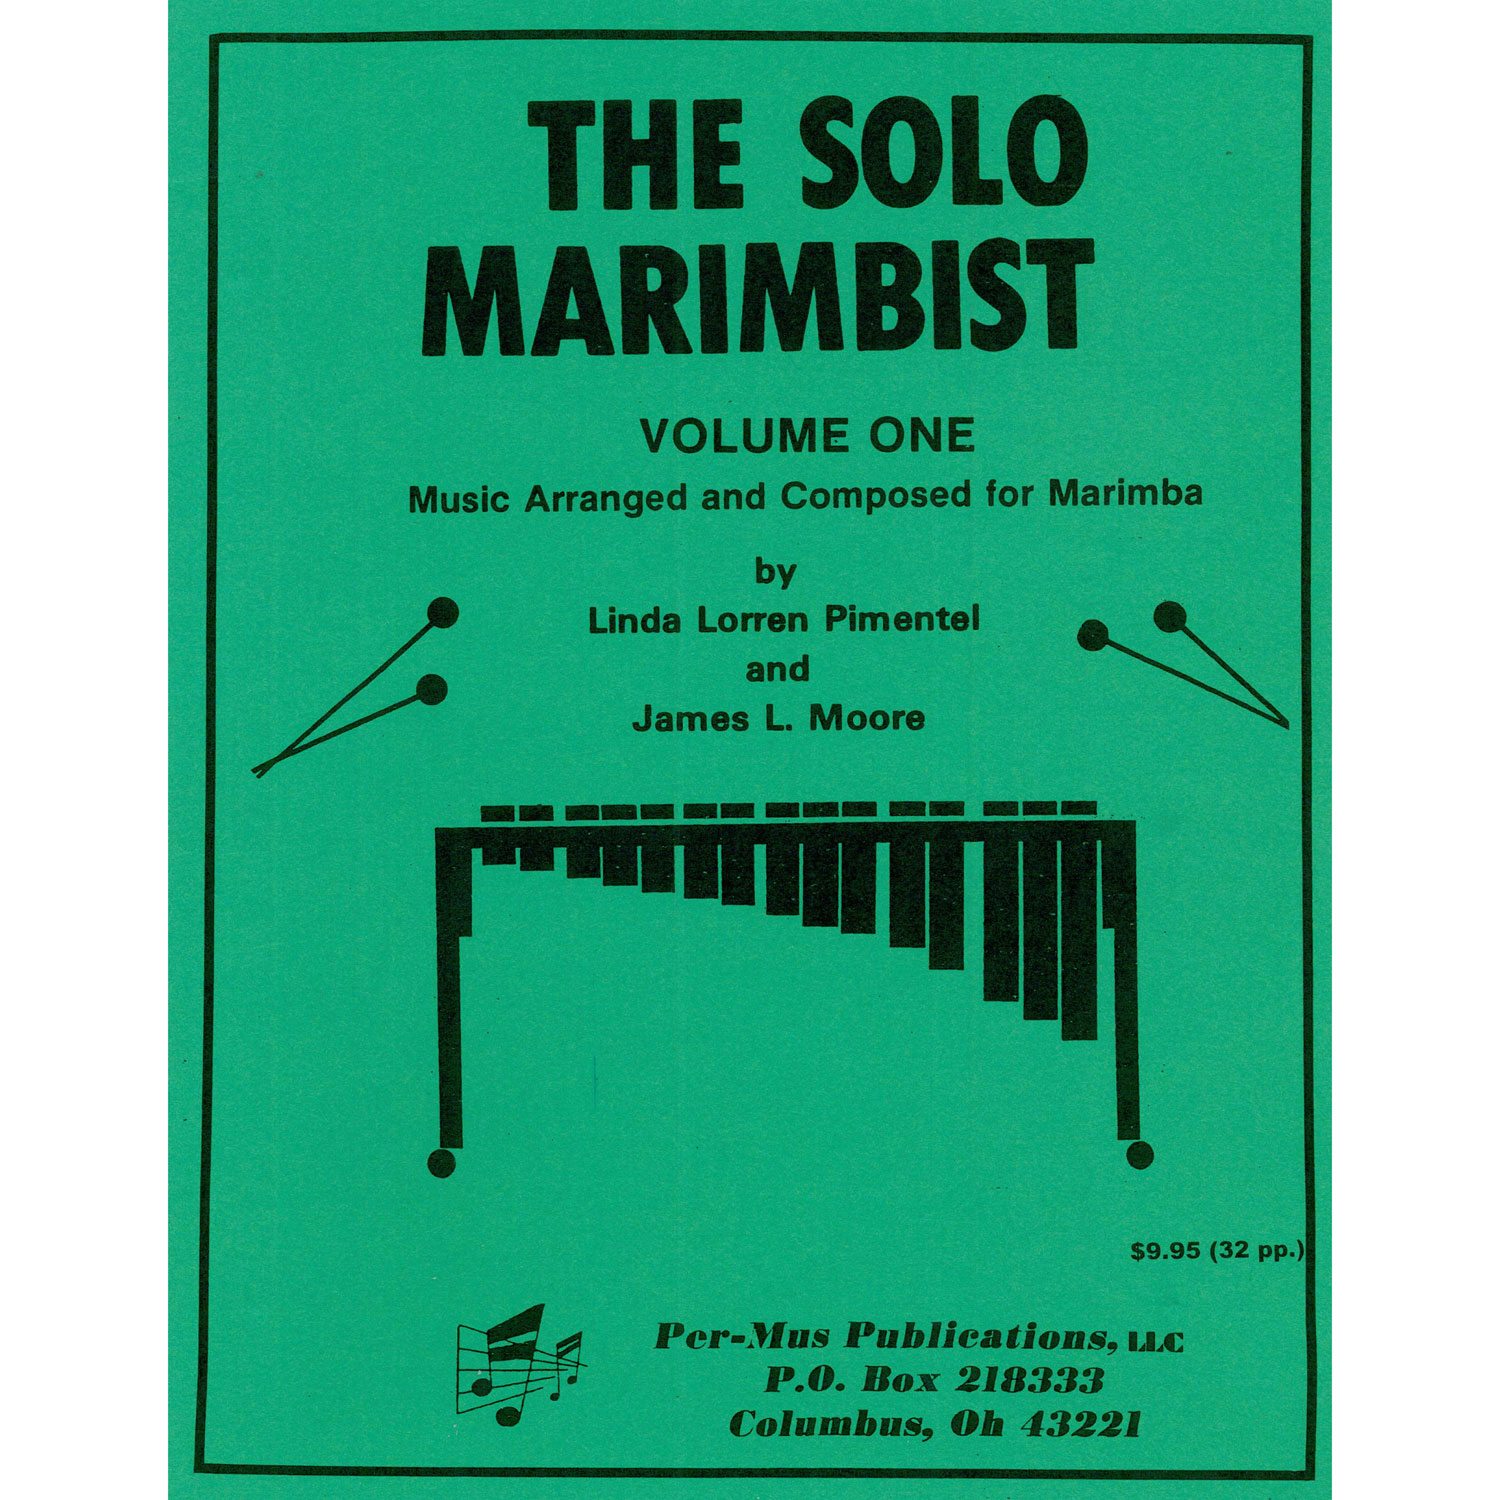 The Solo Marimbist Vol. 1 by Linda Pimentel & James Moore